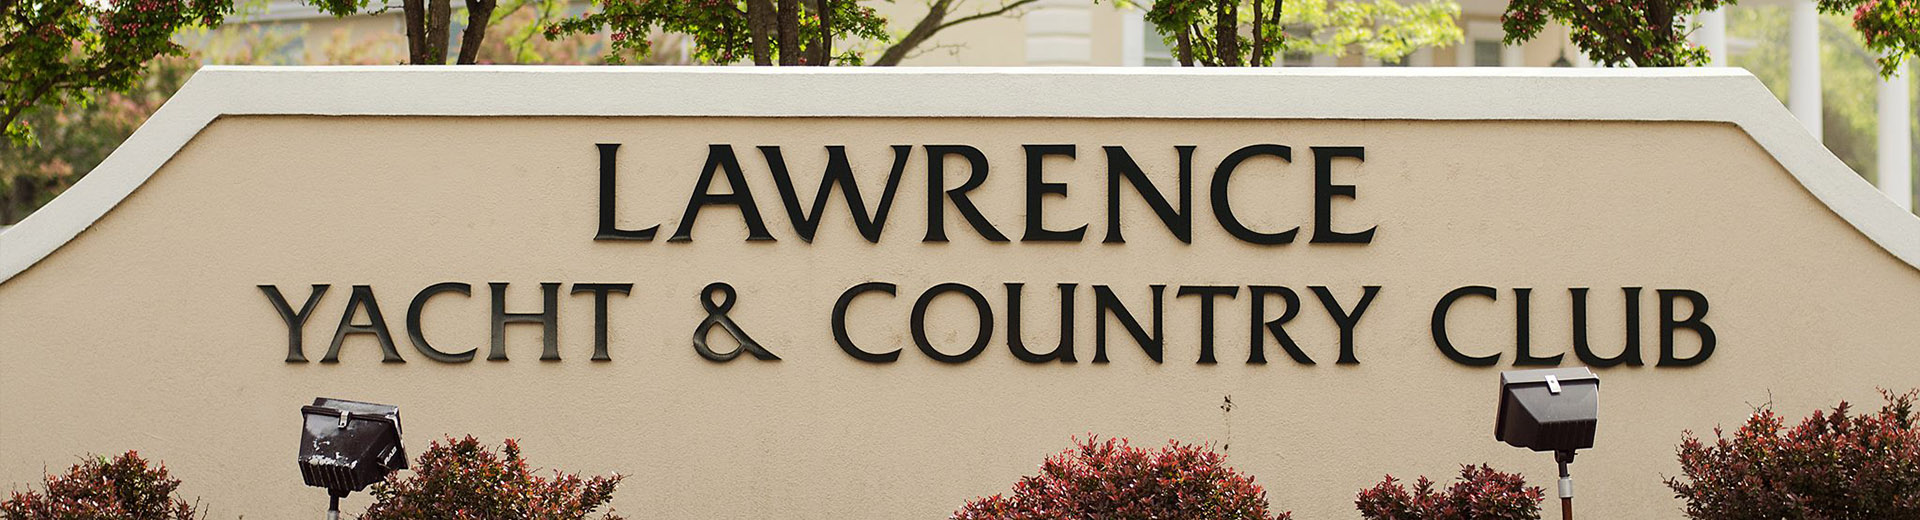 Lawrence Yacht and Country Club welcome sign